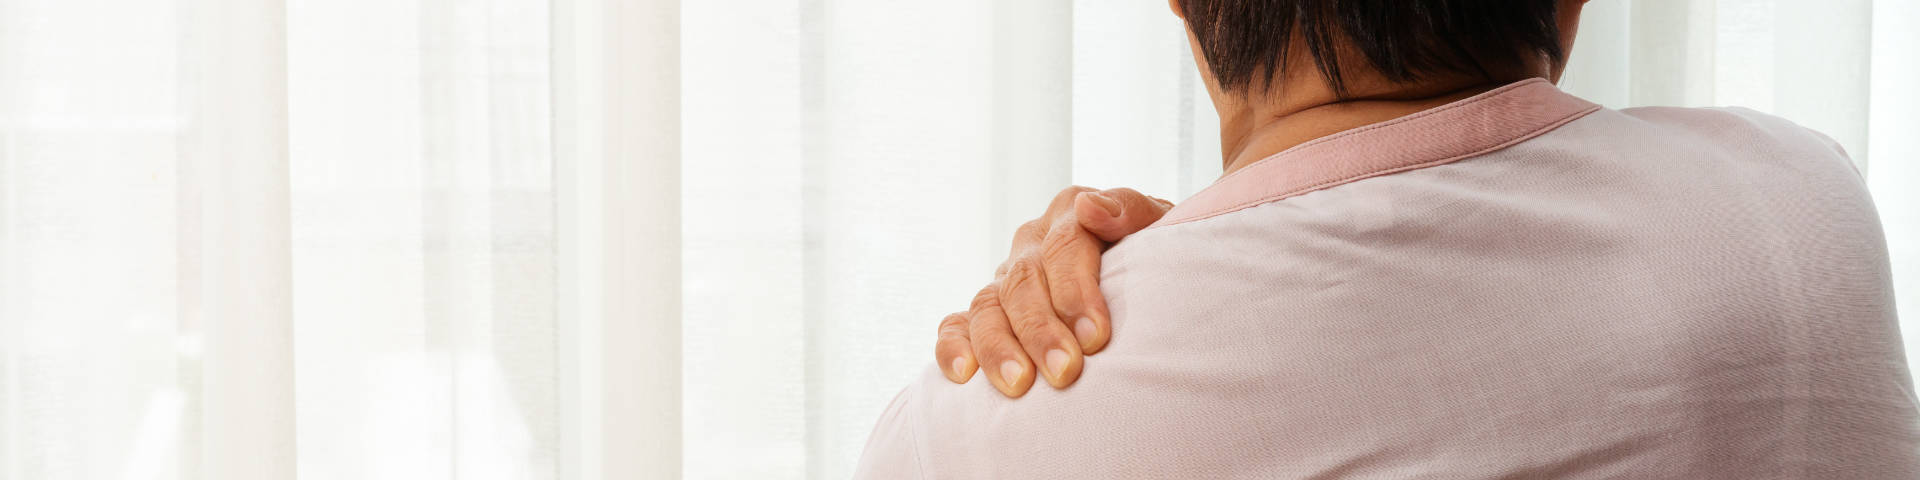 person suffering from shoulder pain